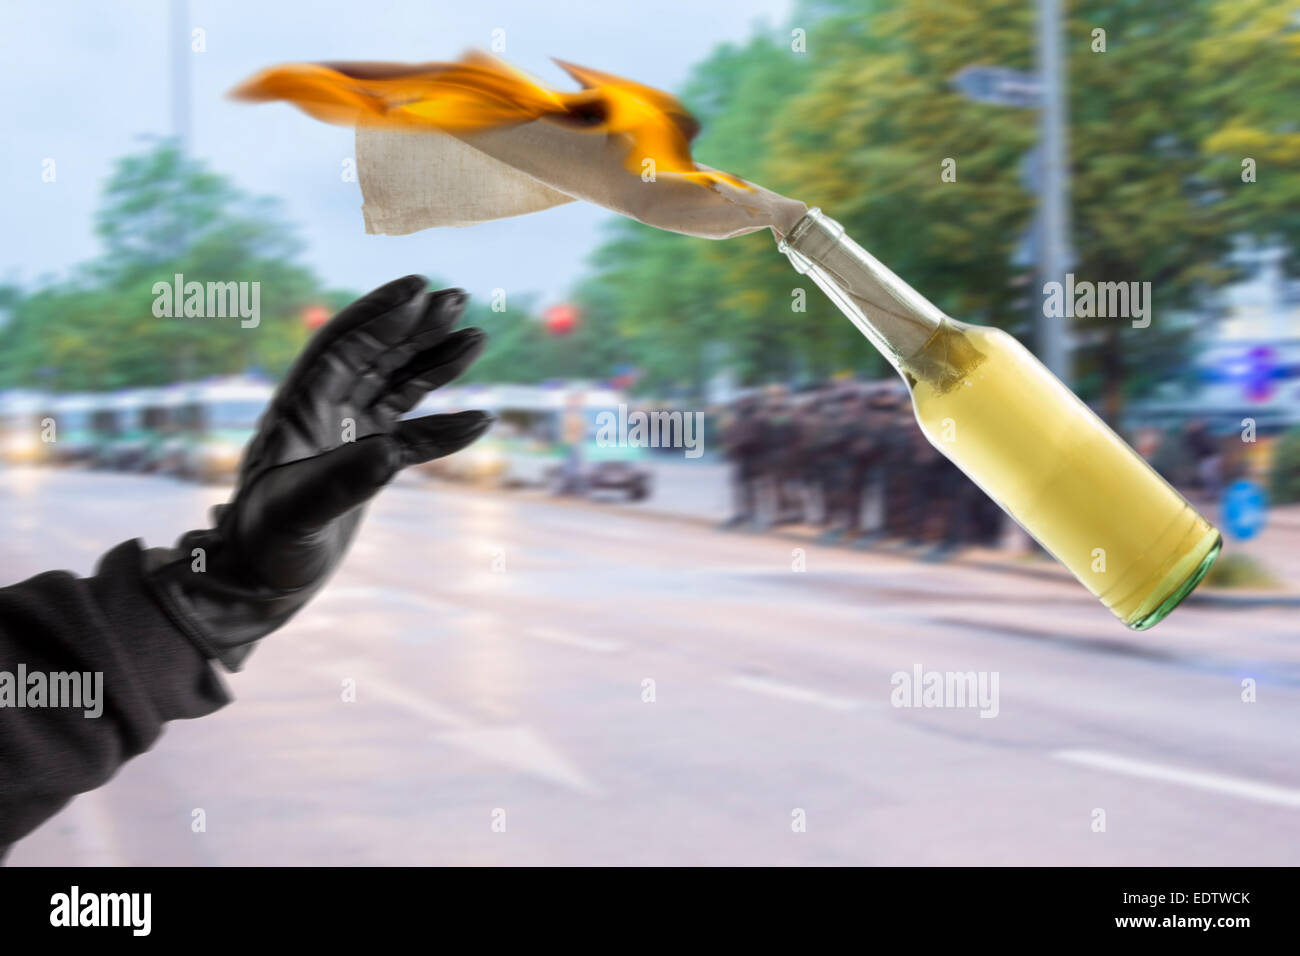 Arm in black sleeve with black leather glove thwowing a Molotov Cocktail with burning fuse, with police forces in - Stock Image